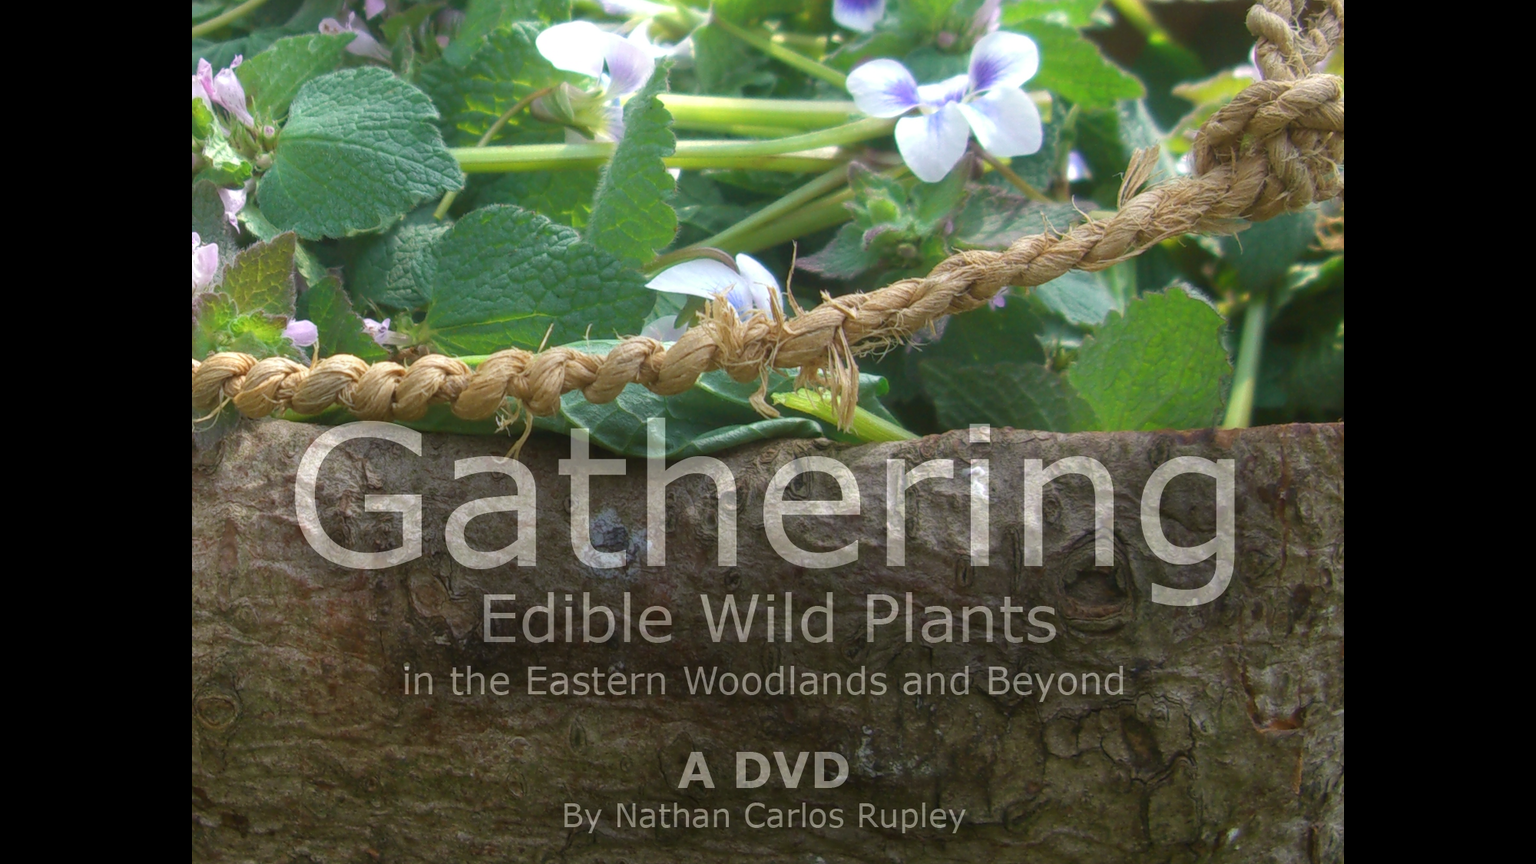 Gathering edible wild plants dvd by nathan carlos rupley for American cuisine dvd